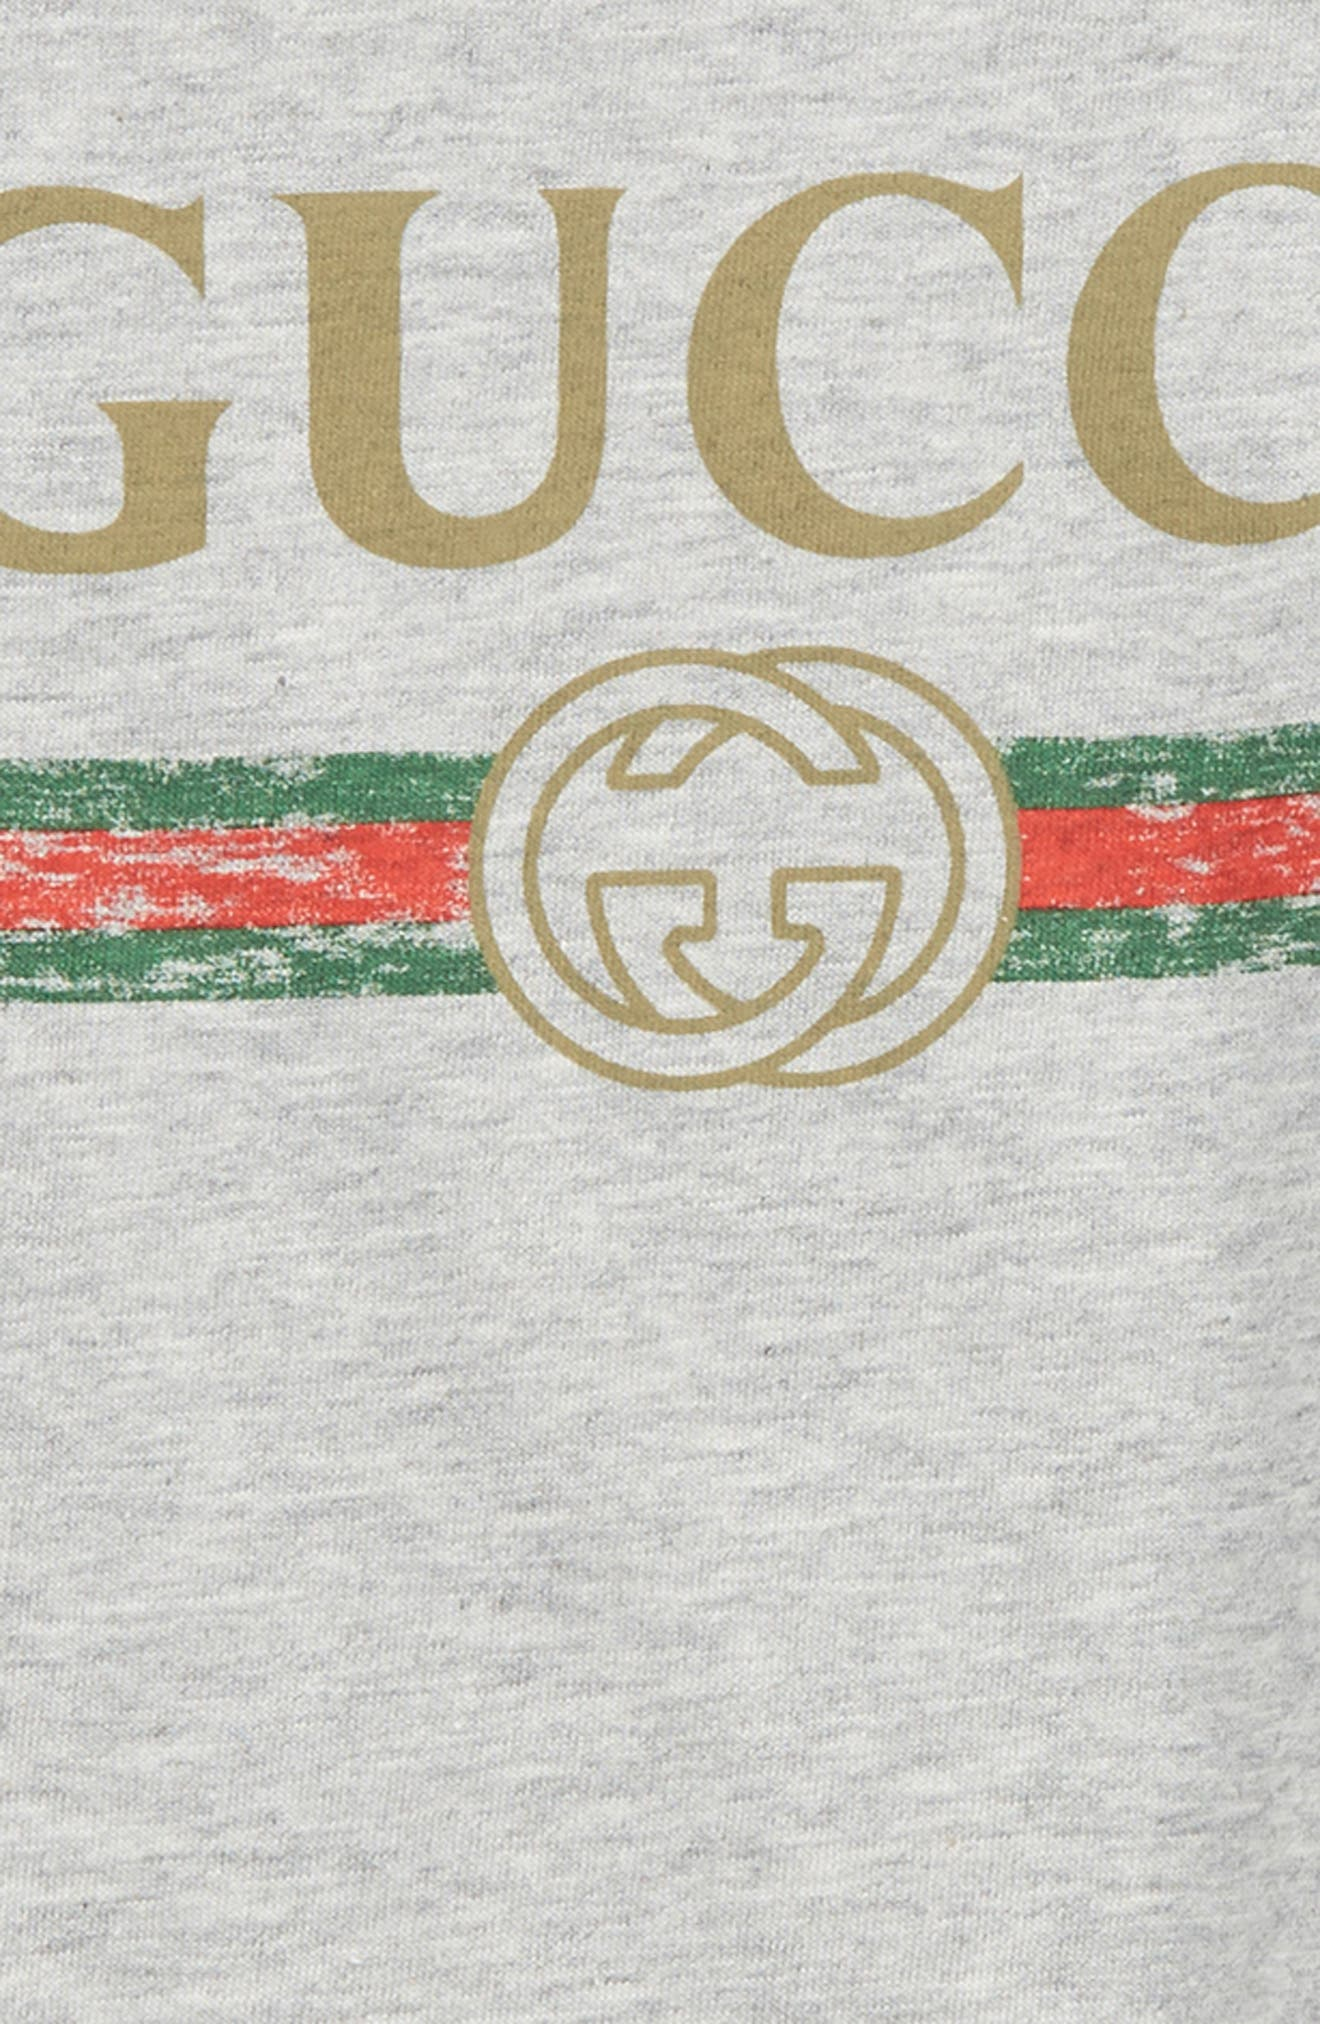 GUCCI, Logo T-Shirt, Alternate thumbnail 2, color, LIGHT GREY/ GREEN/ RED